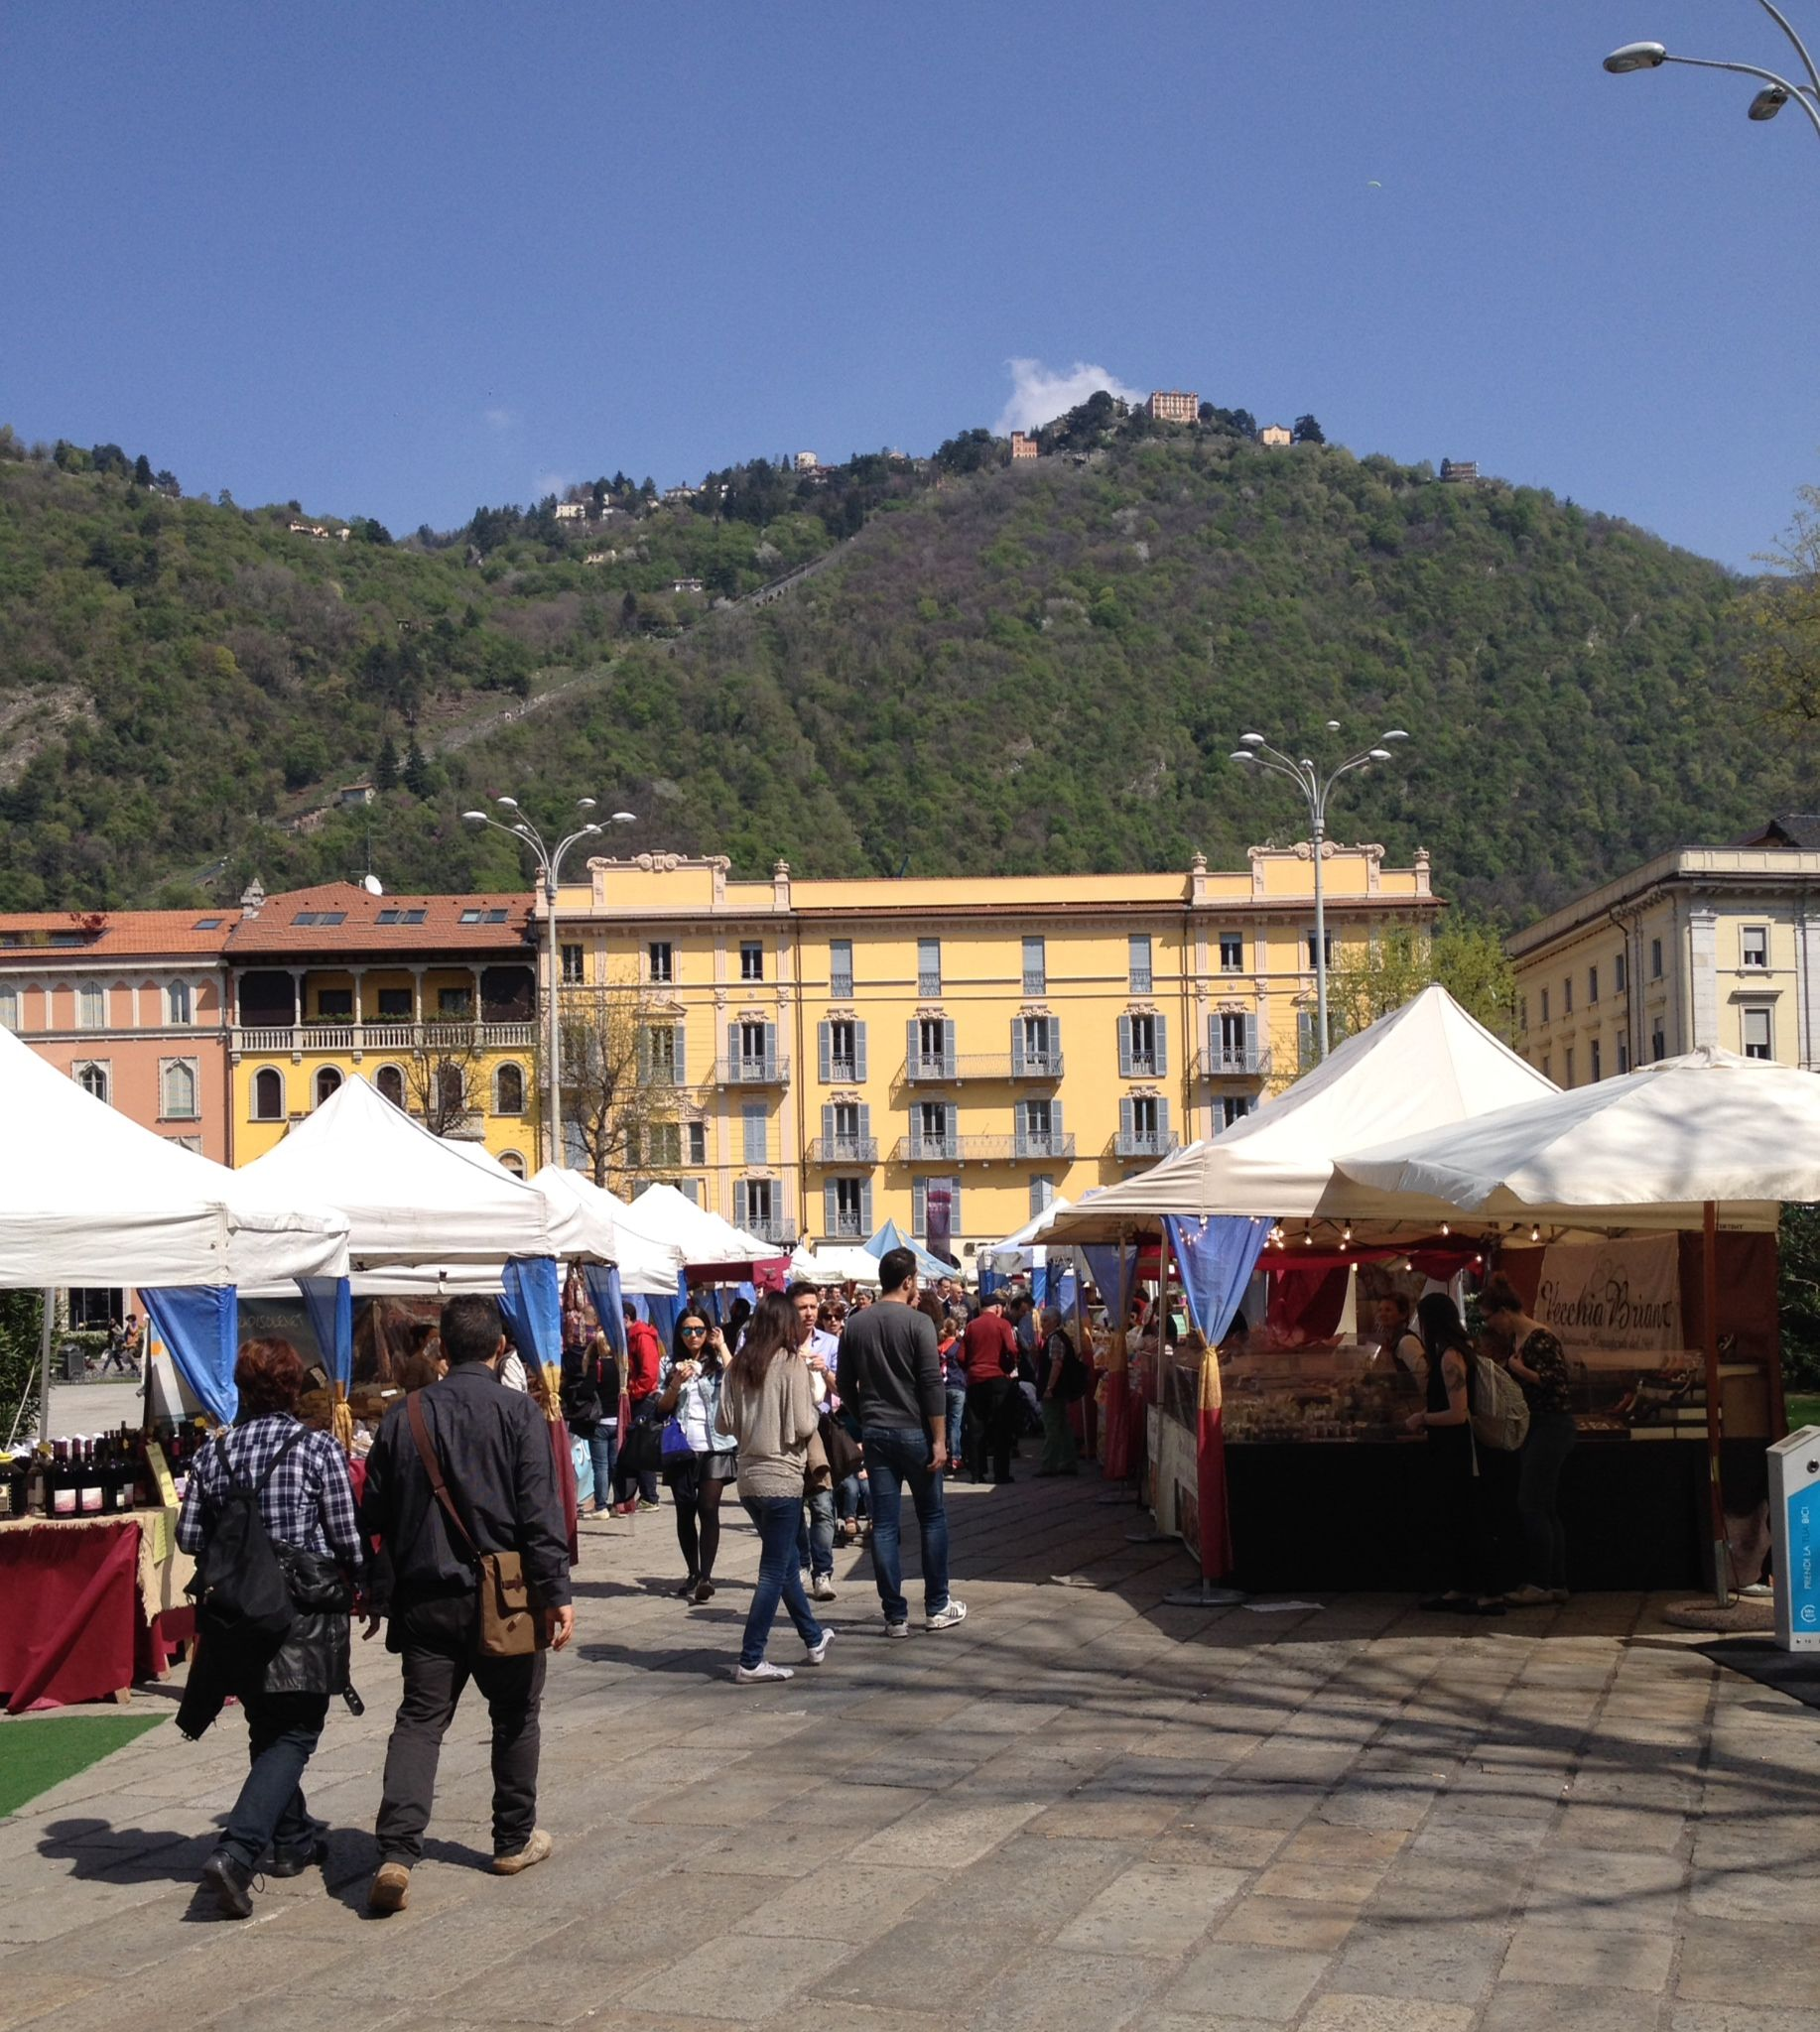 Outdoor market is set up in Piazza Cavour ~ Como, Italy